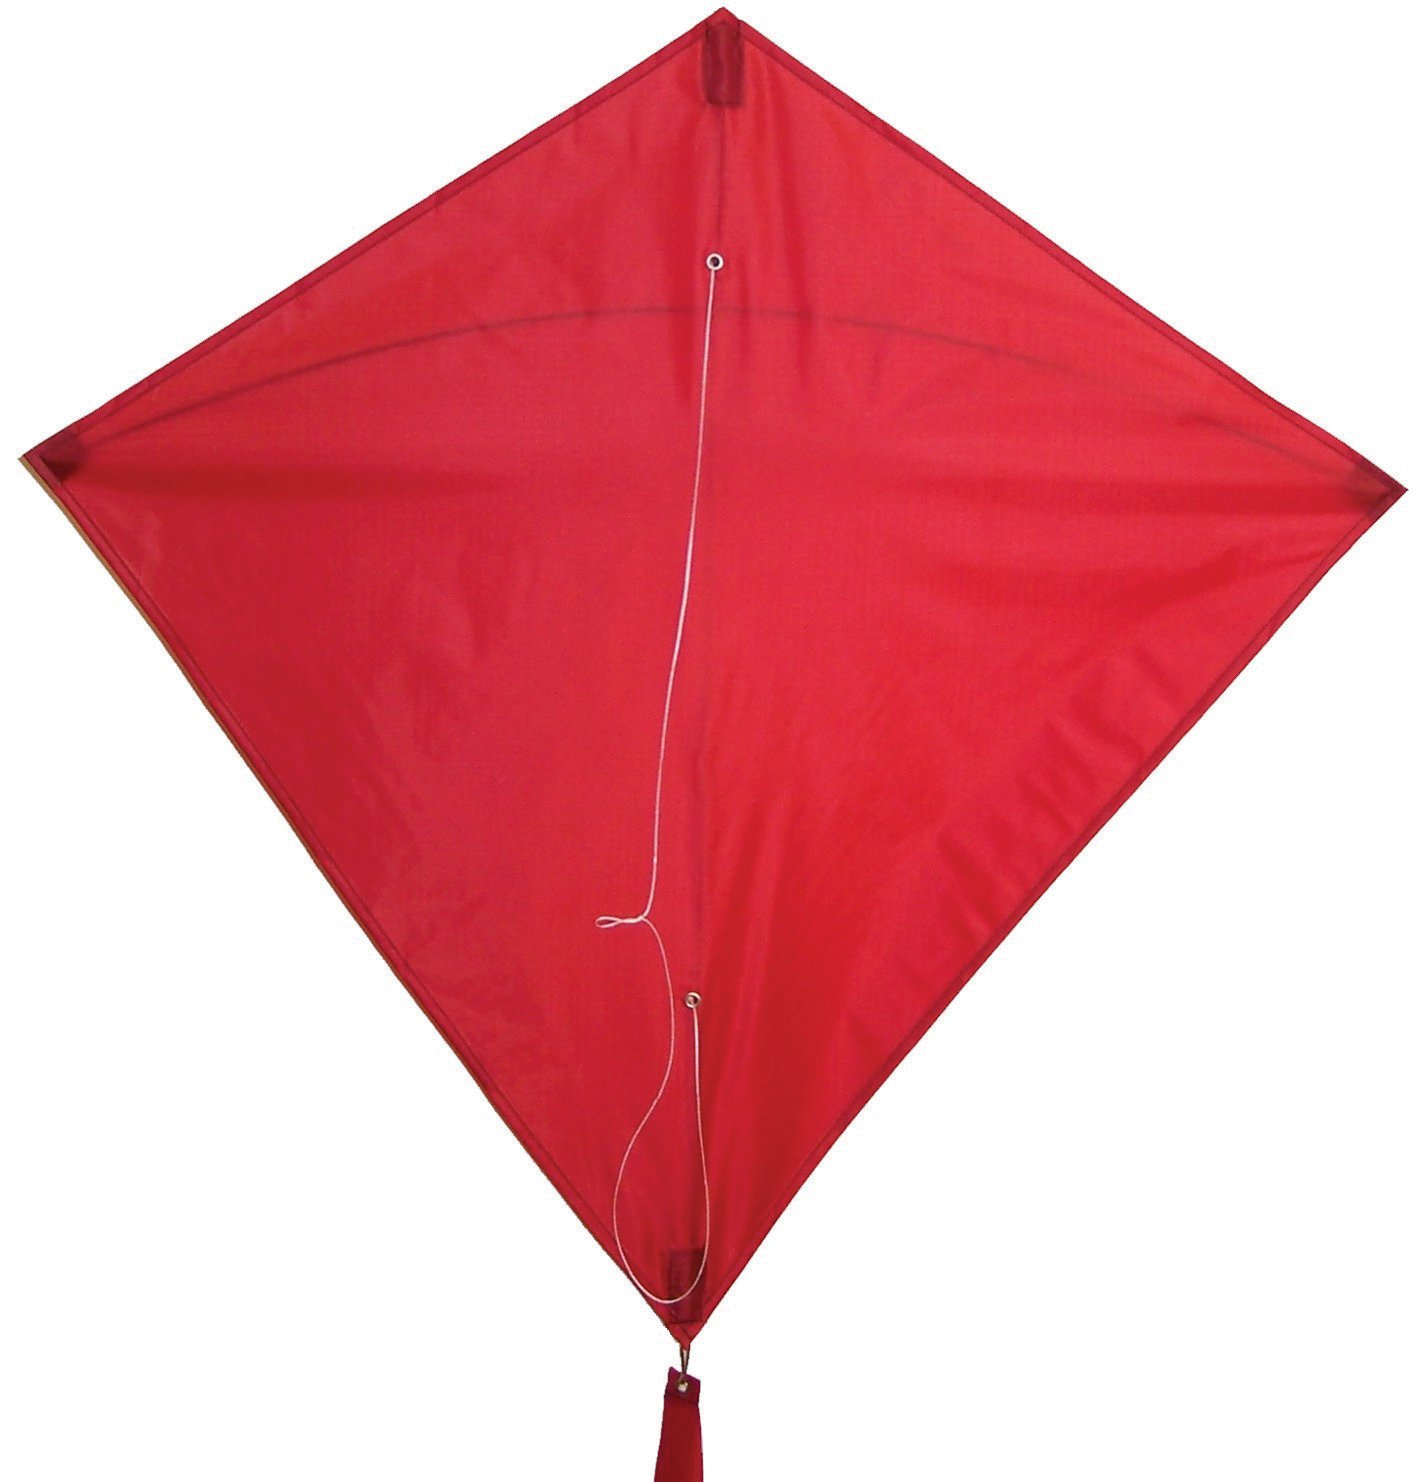 In The Breeze 30-Inch Diamond Kite, Red 2988